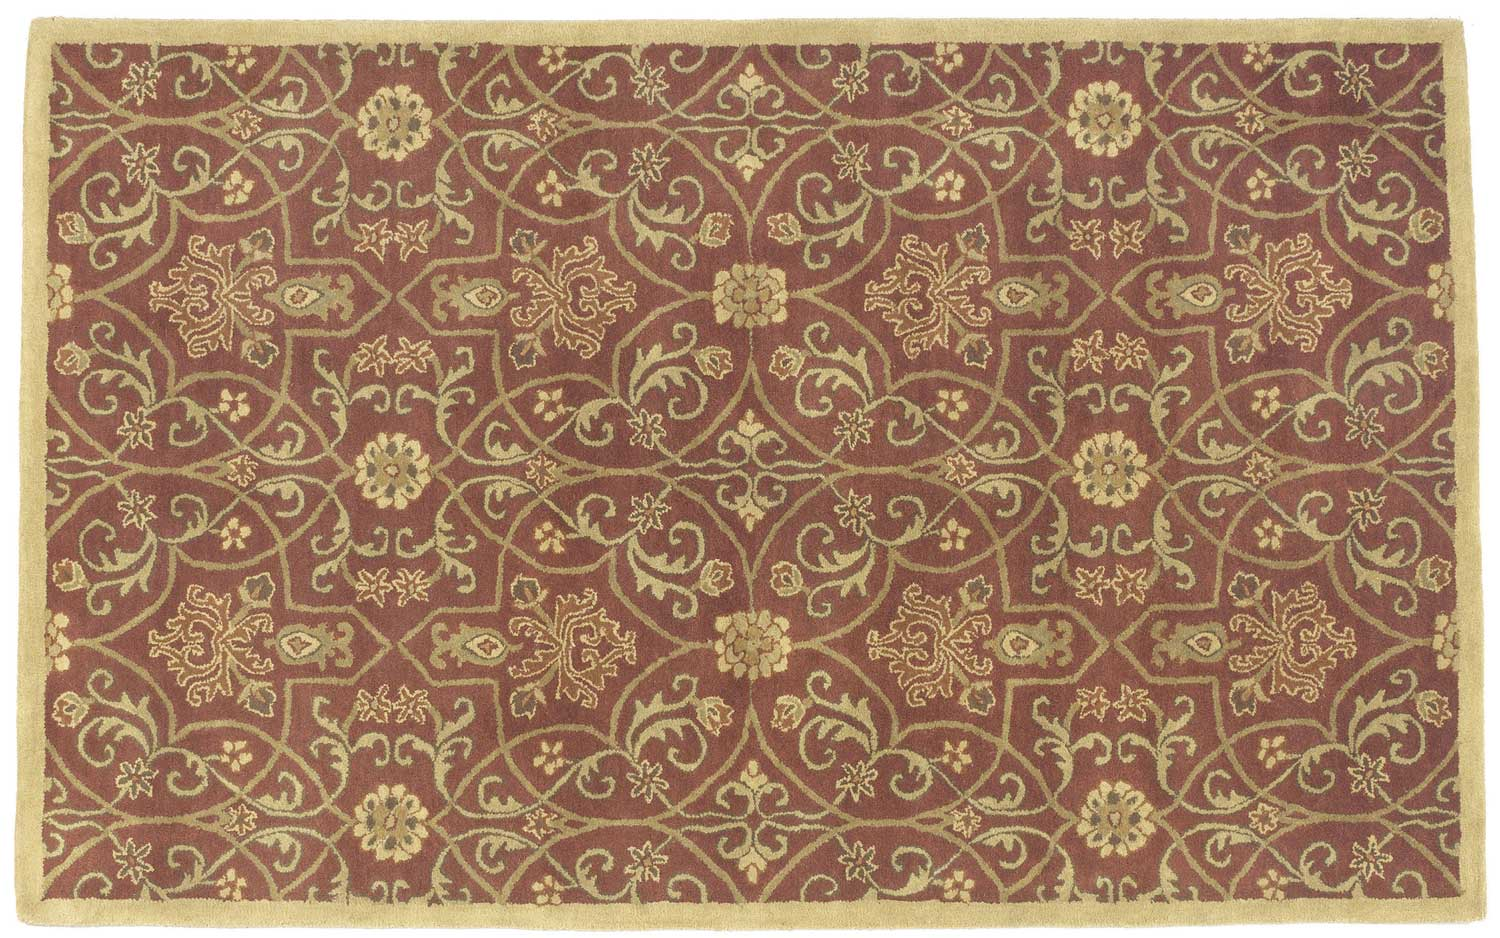 Jackson 912 Rug - Furniture